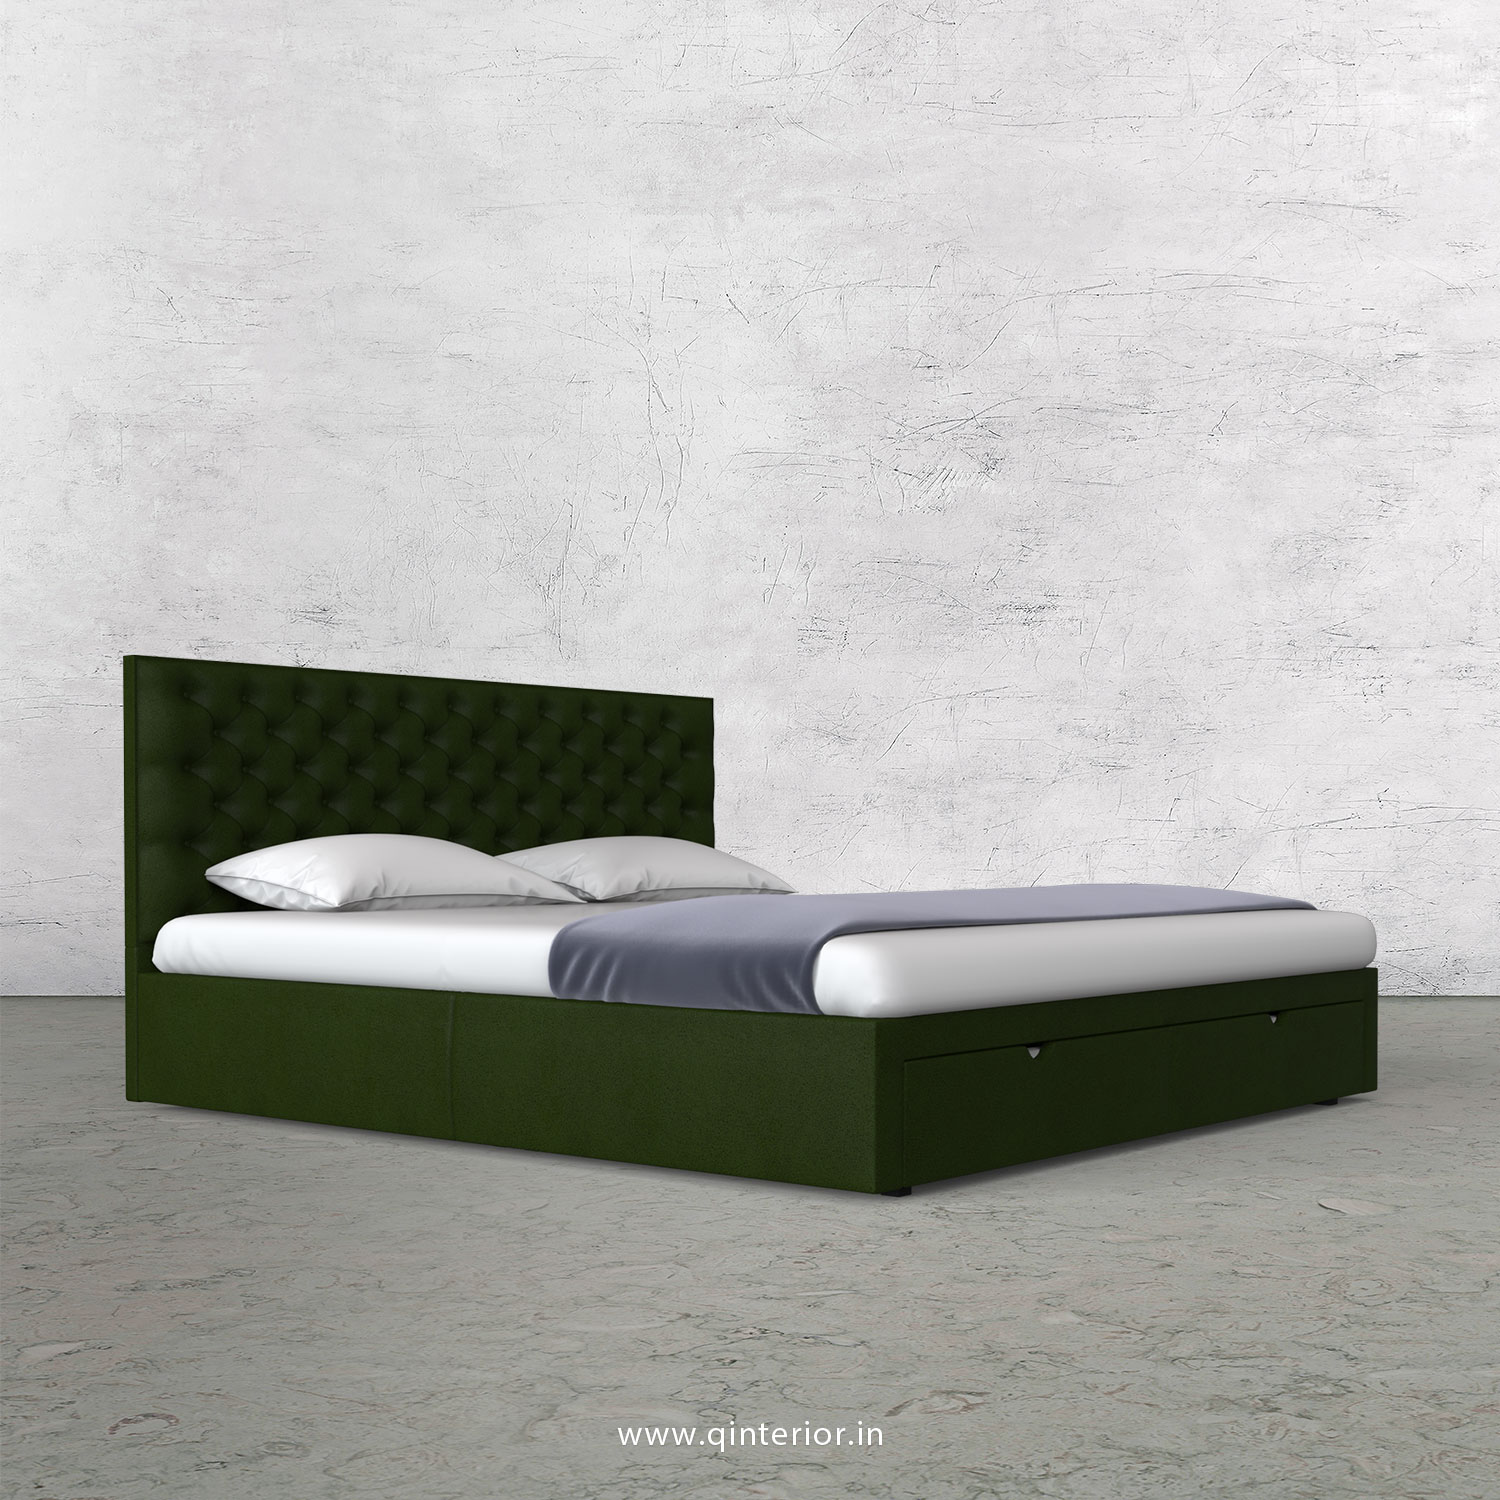 Orion Queen Storage Bed in Fab Leather Fabric - QBD001 FL04